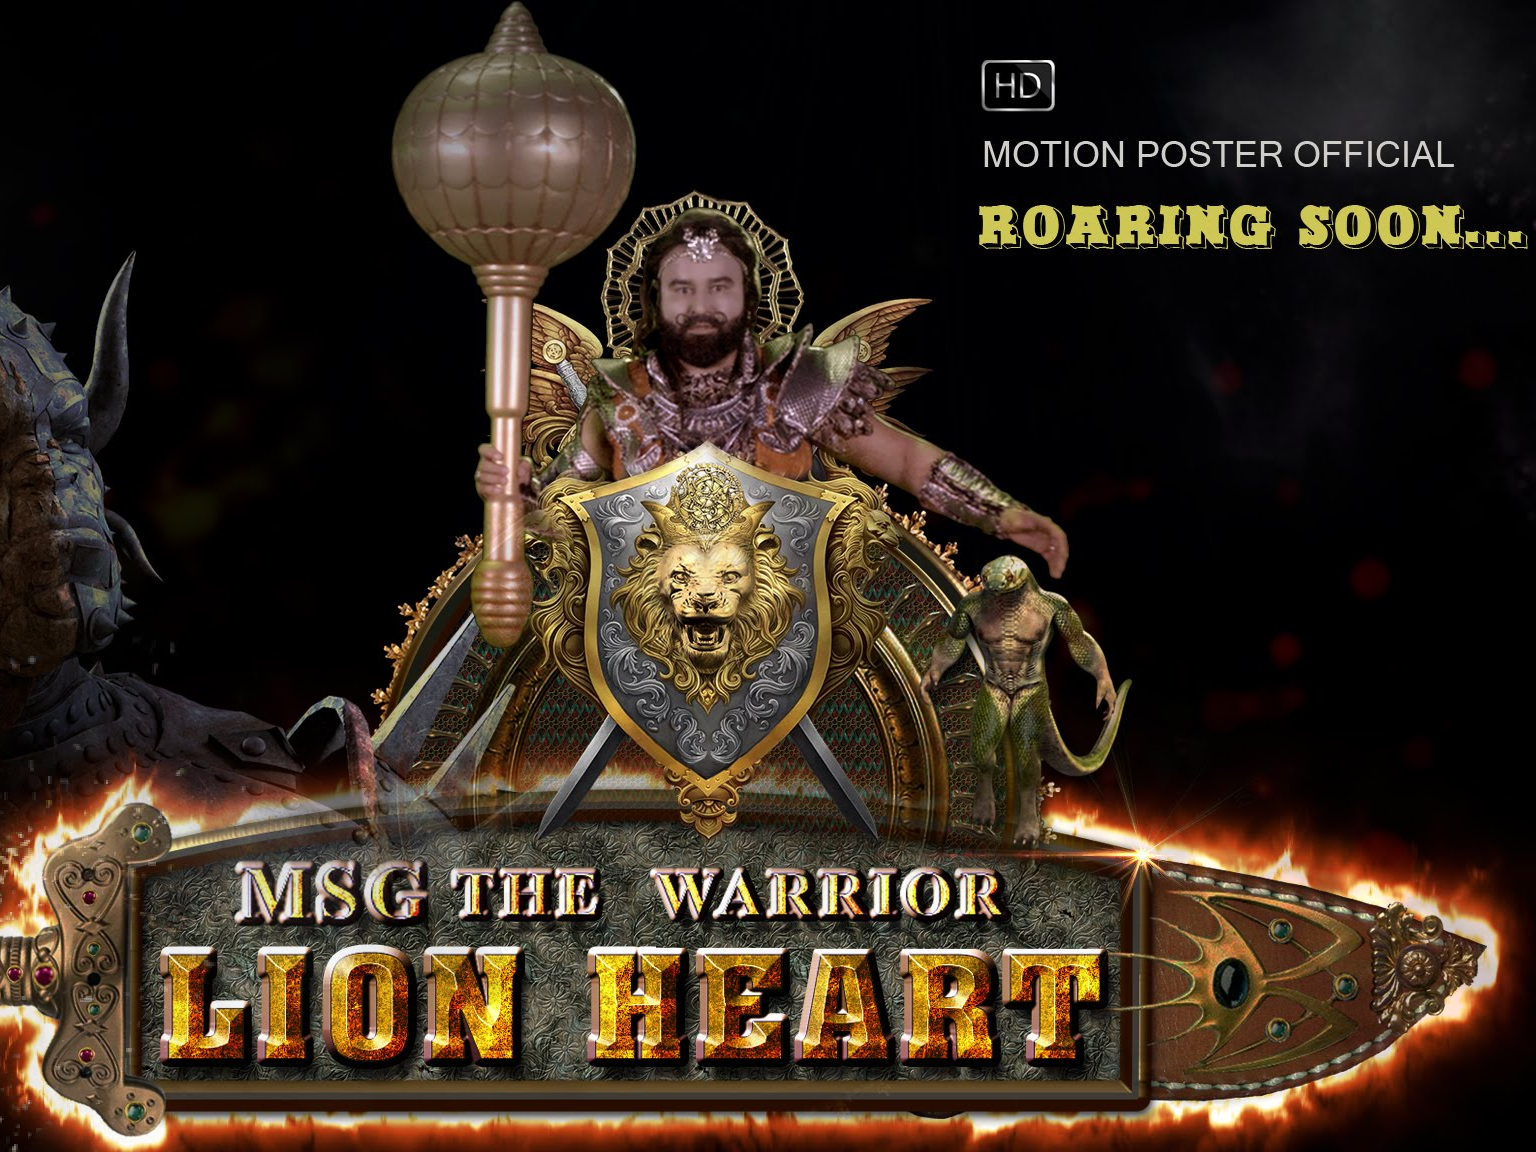 MSG, Lion Heart, MSG The Warrior Lion Heart, Great MSG, Gurmeet Ram Rahim Singh, Trailer of MSG